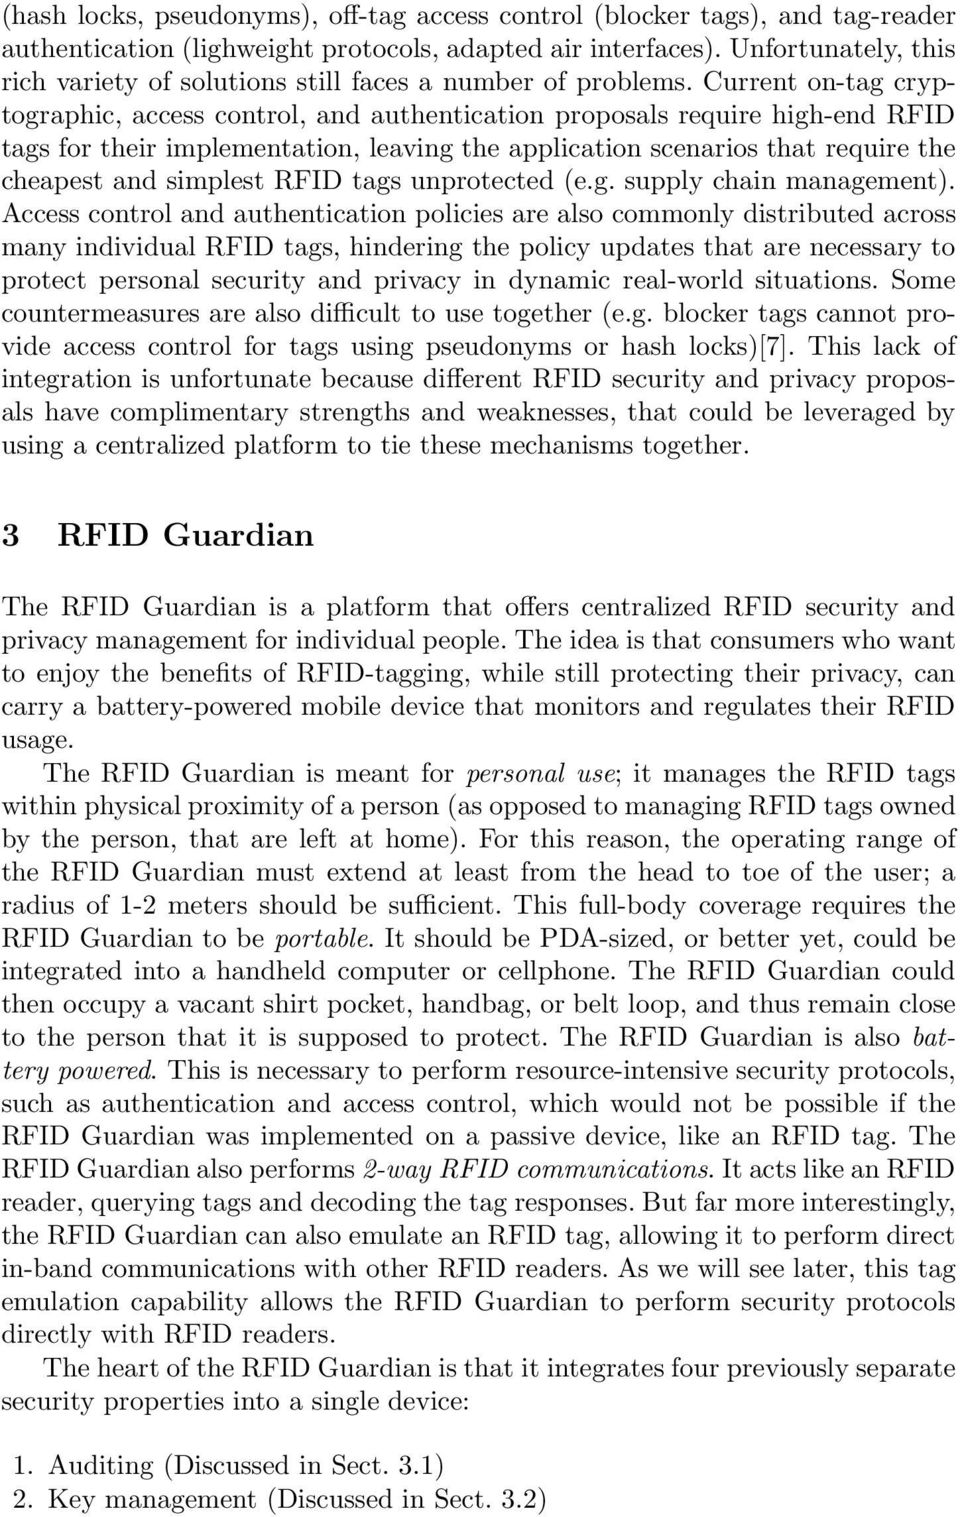 Current on-tag cryptographic, access control, and authentication proposals require high-end RFID tags for their implementation, leaving the application scenarios that require the cheapest and